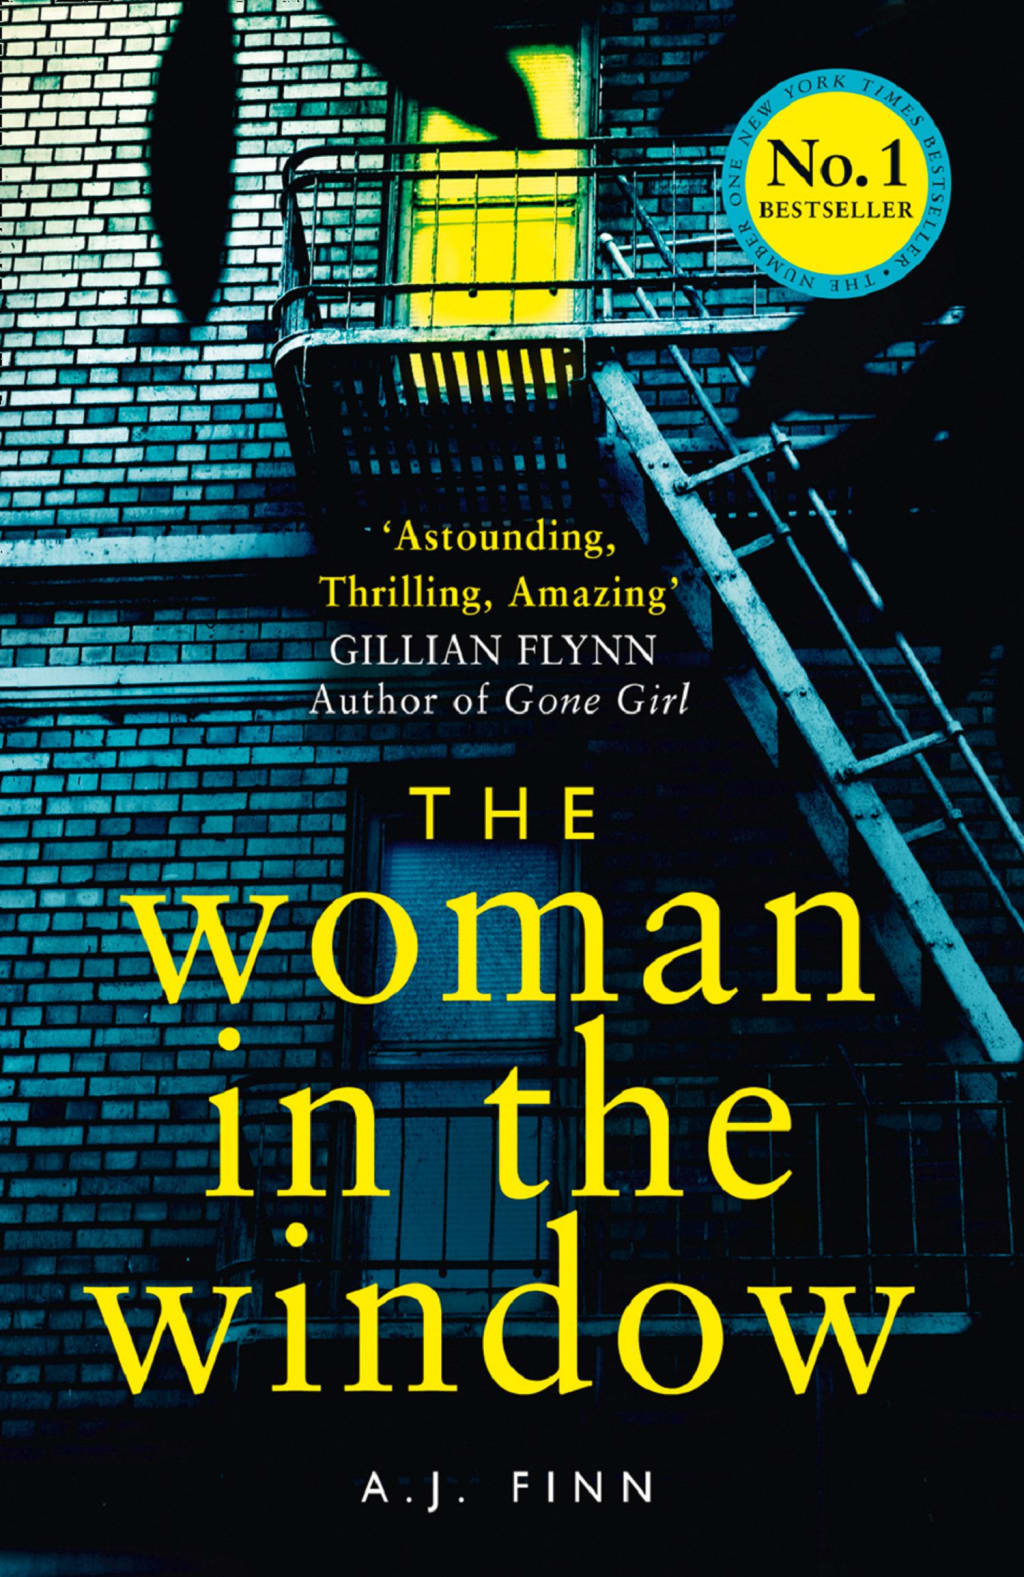 Book Review: The Woman in the Window